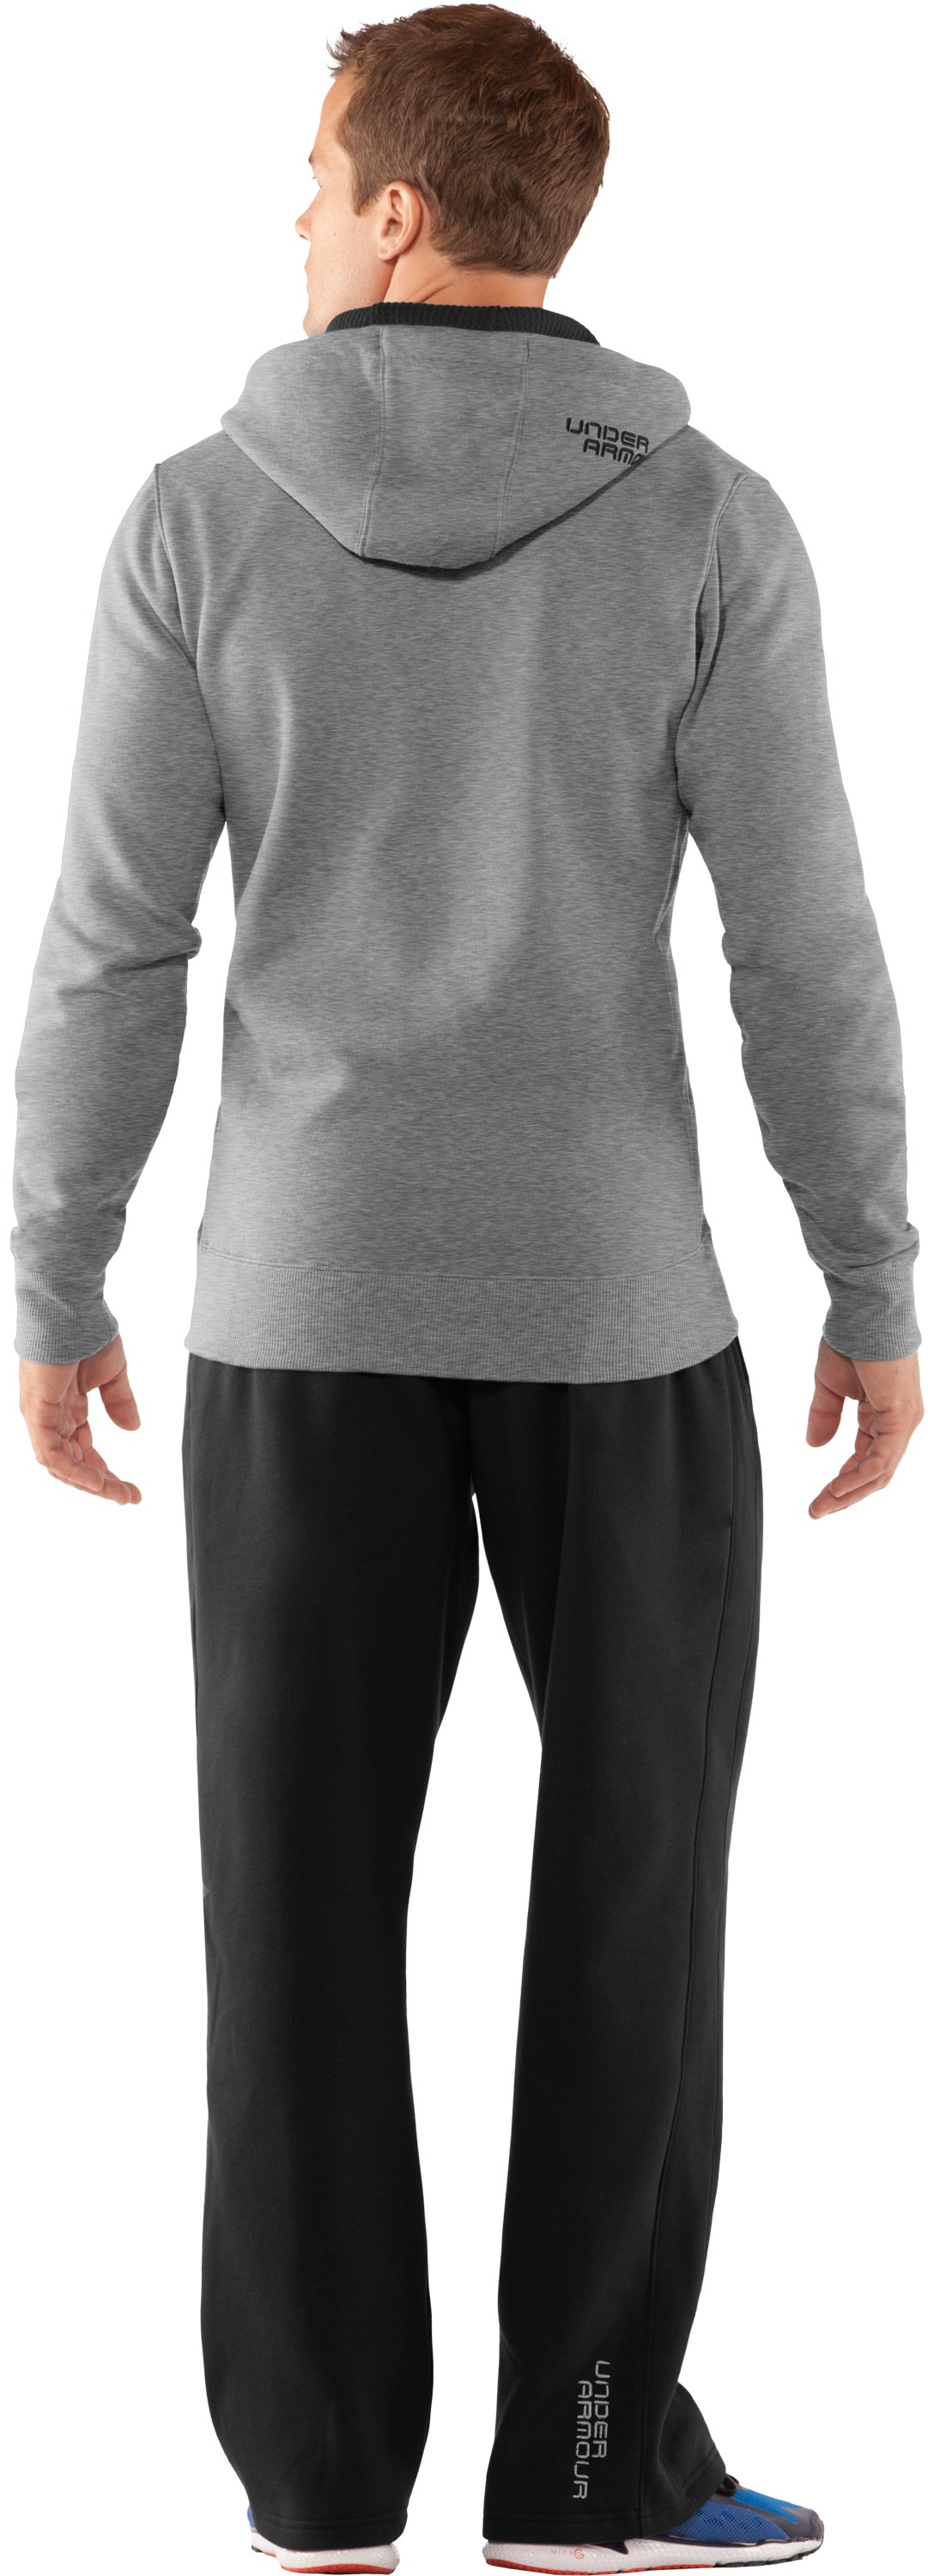 Men's Charged Cotton® Storm Full Zip Hoodie, True Gray Heather, Back